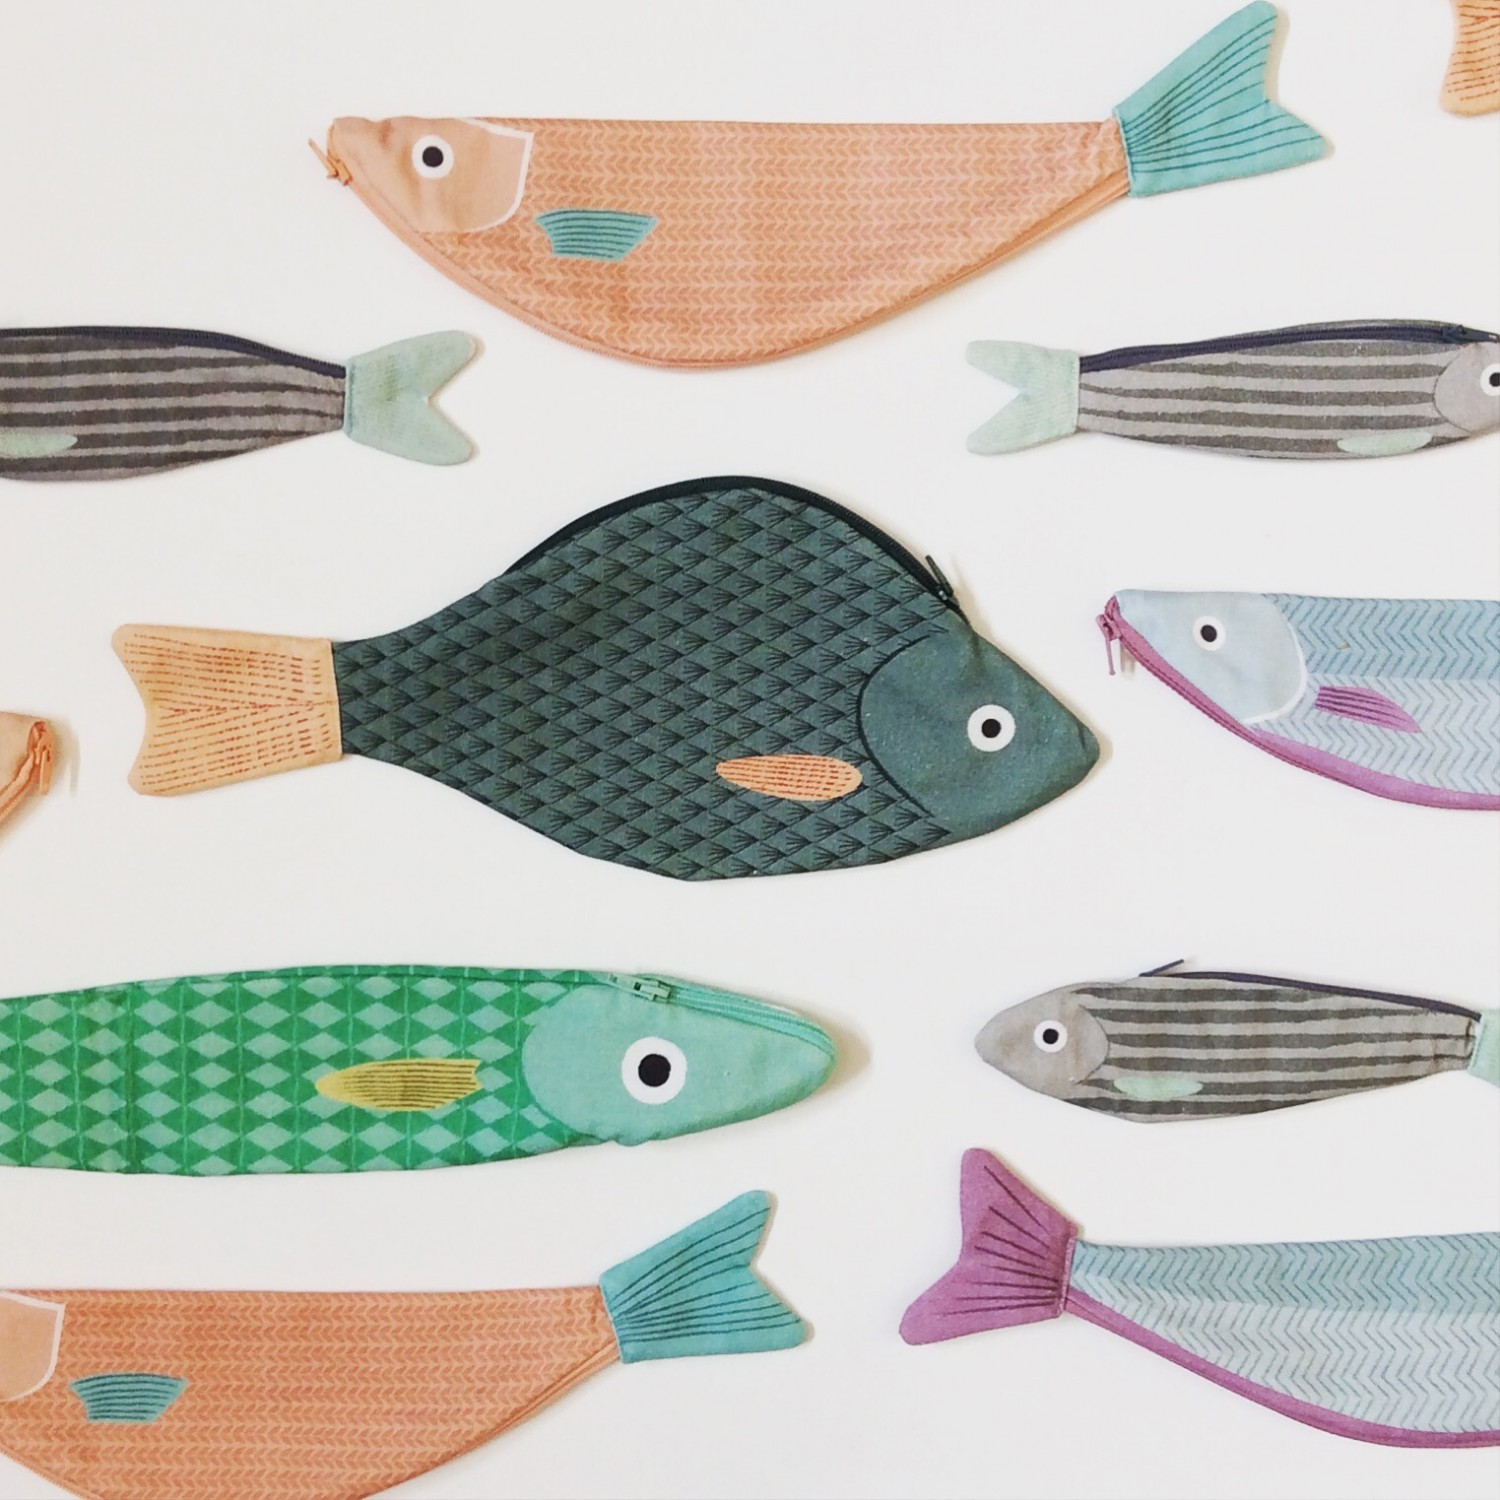 fish-pouches-don-fisher-03.jpg